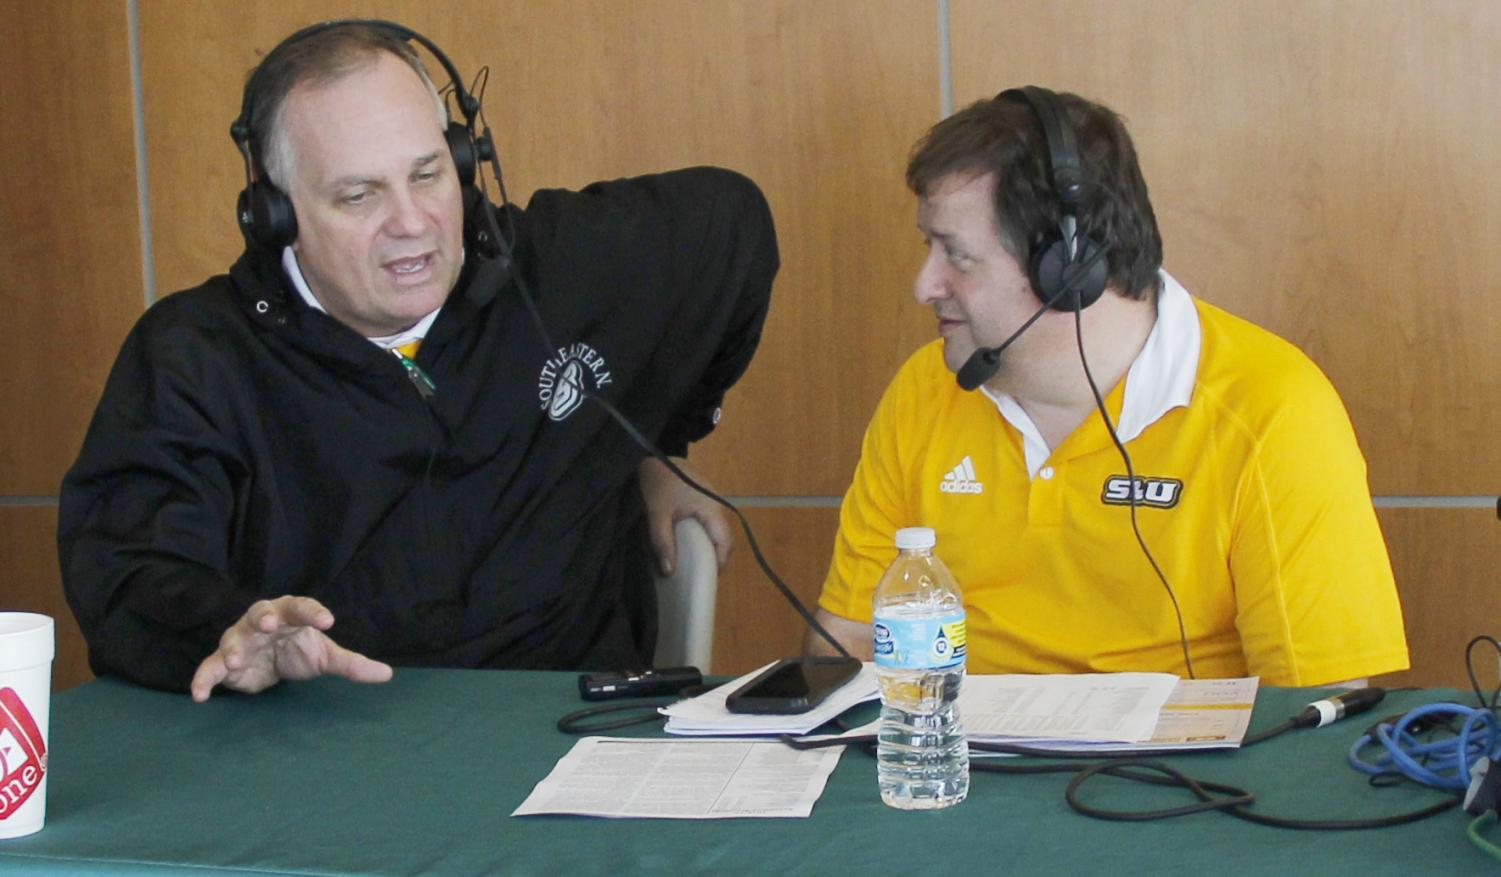 Jay Ladner, former head coach of men's basketball, returned to coach at his alma mater. Ladner won the 1987 NIT Tournament with the Golden Eagles.